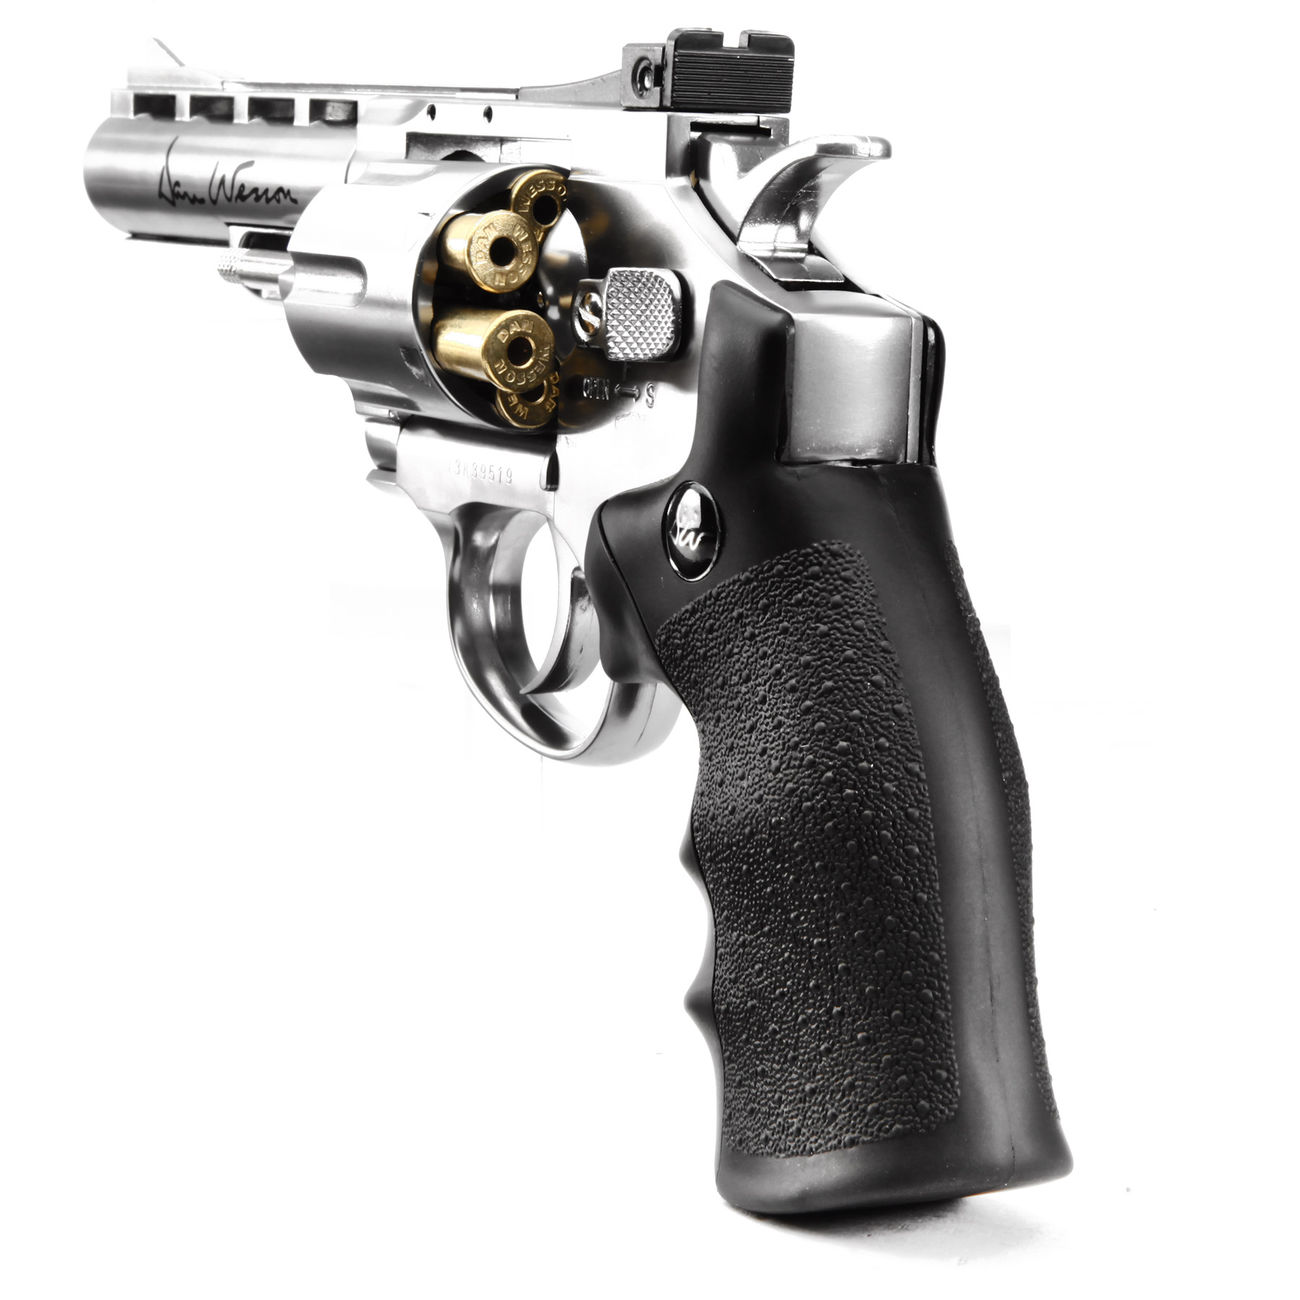 ASG Dan Wesson 4 Zoll 6mm BB CO2 Softair Revolver chrom 3